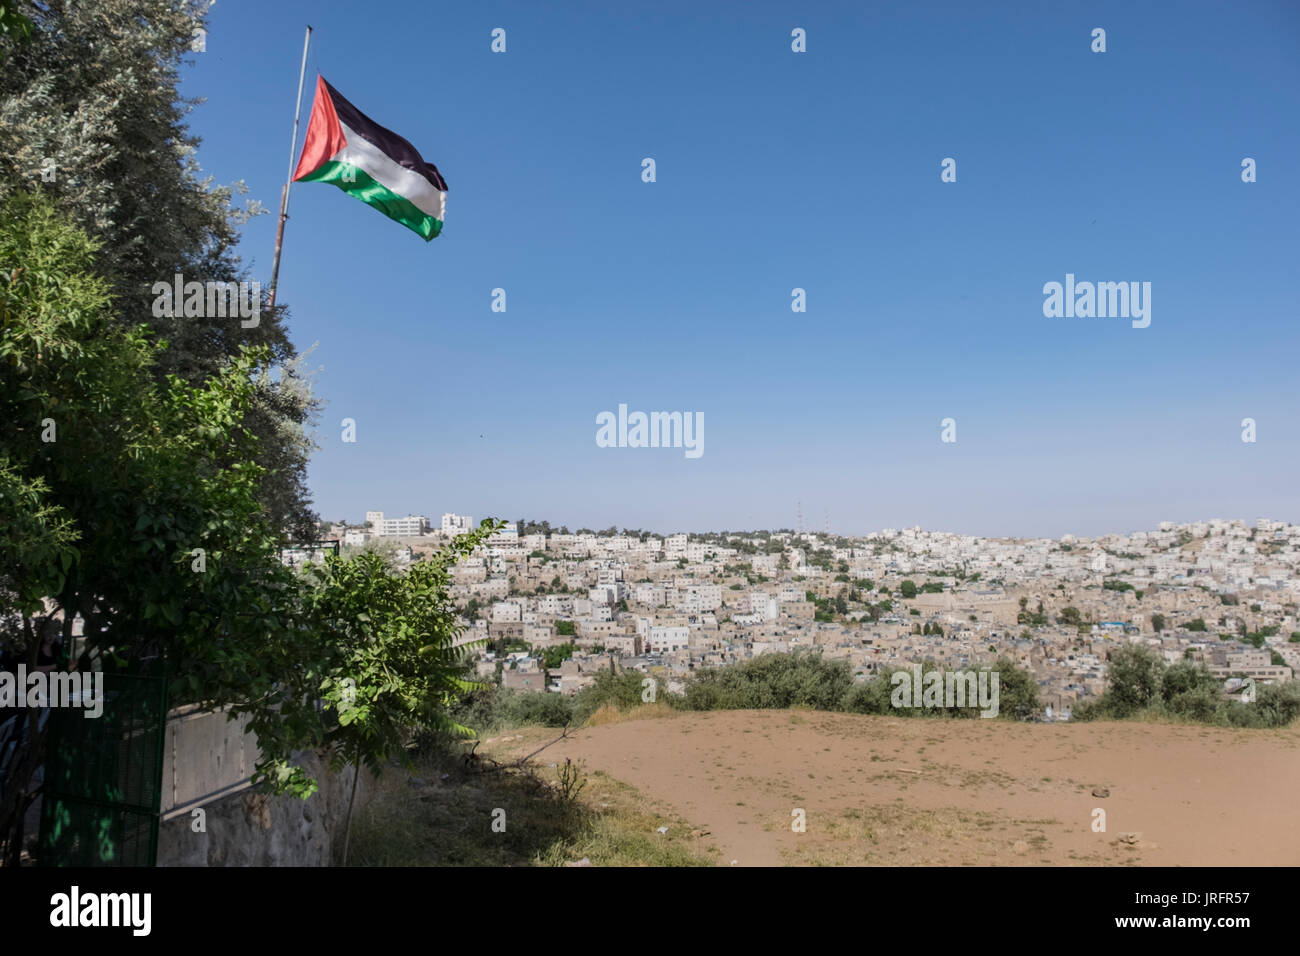 A view of the center of the conflicted city of Hebron as seen from a Palestinian neighborhood overlooking it with a Palestinian flag flying defiantly - Stock Image